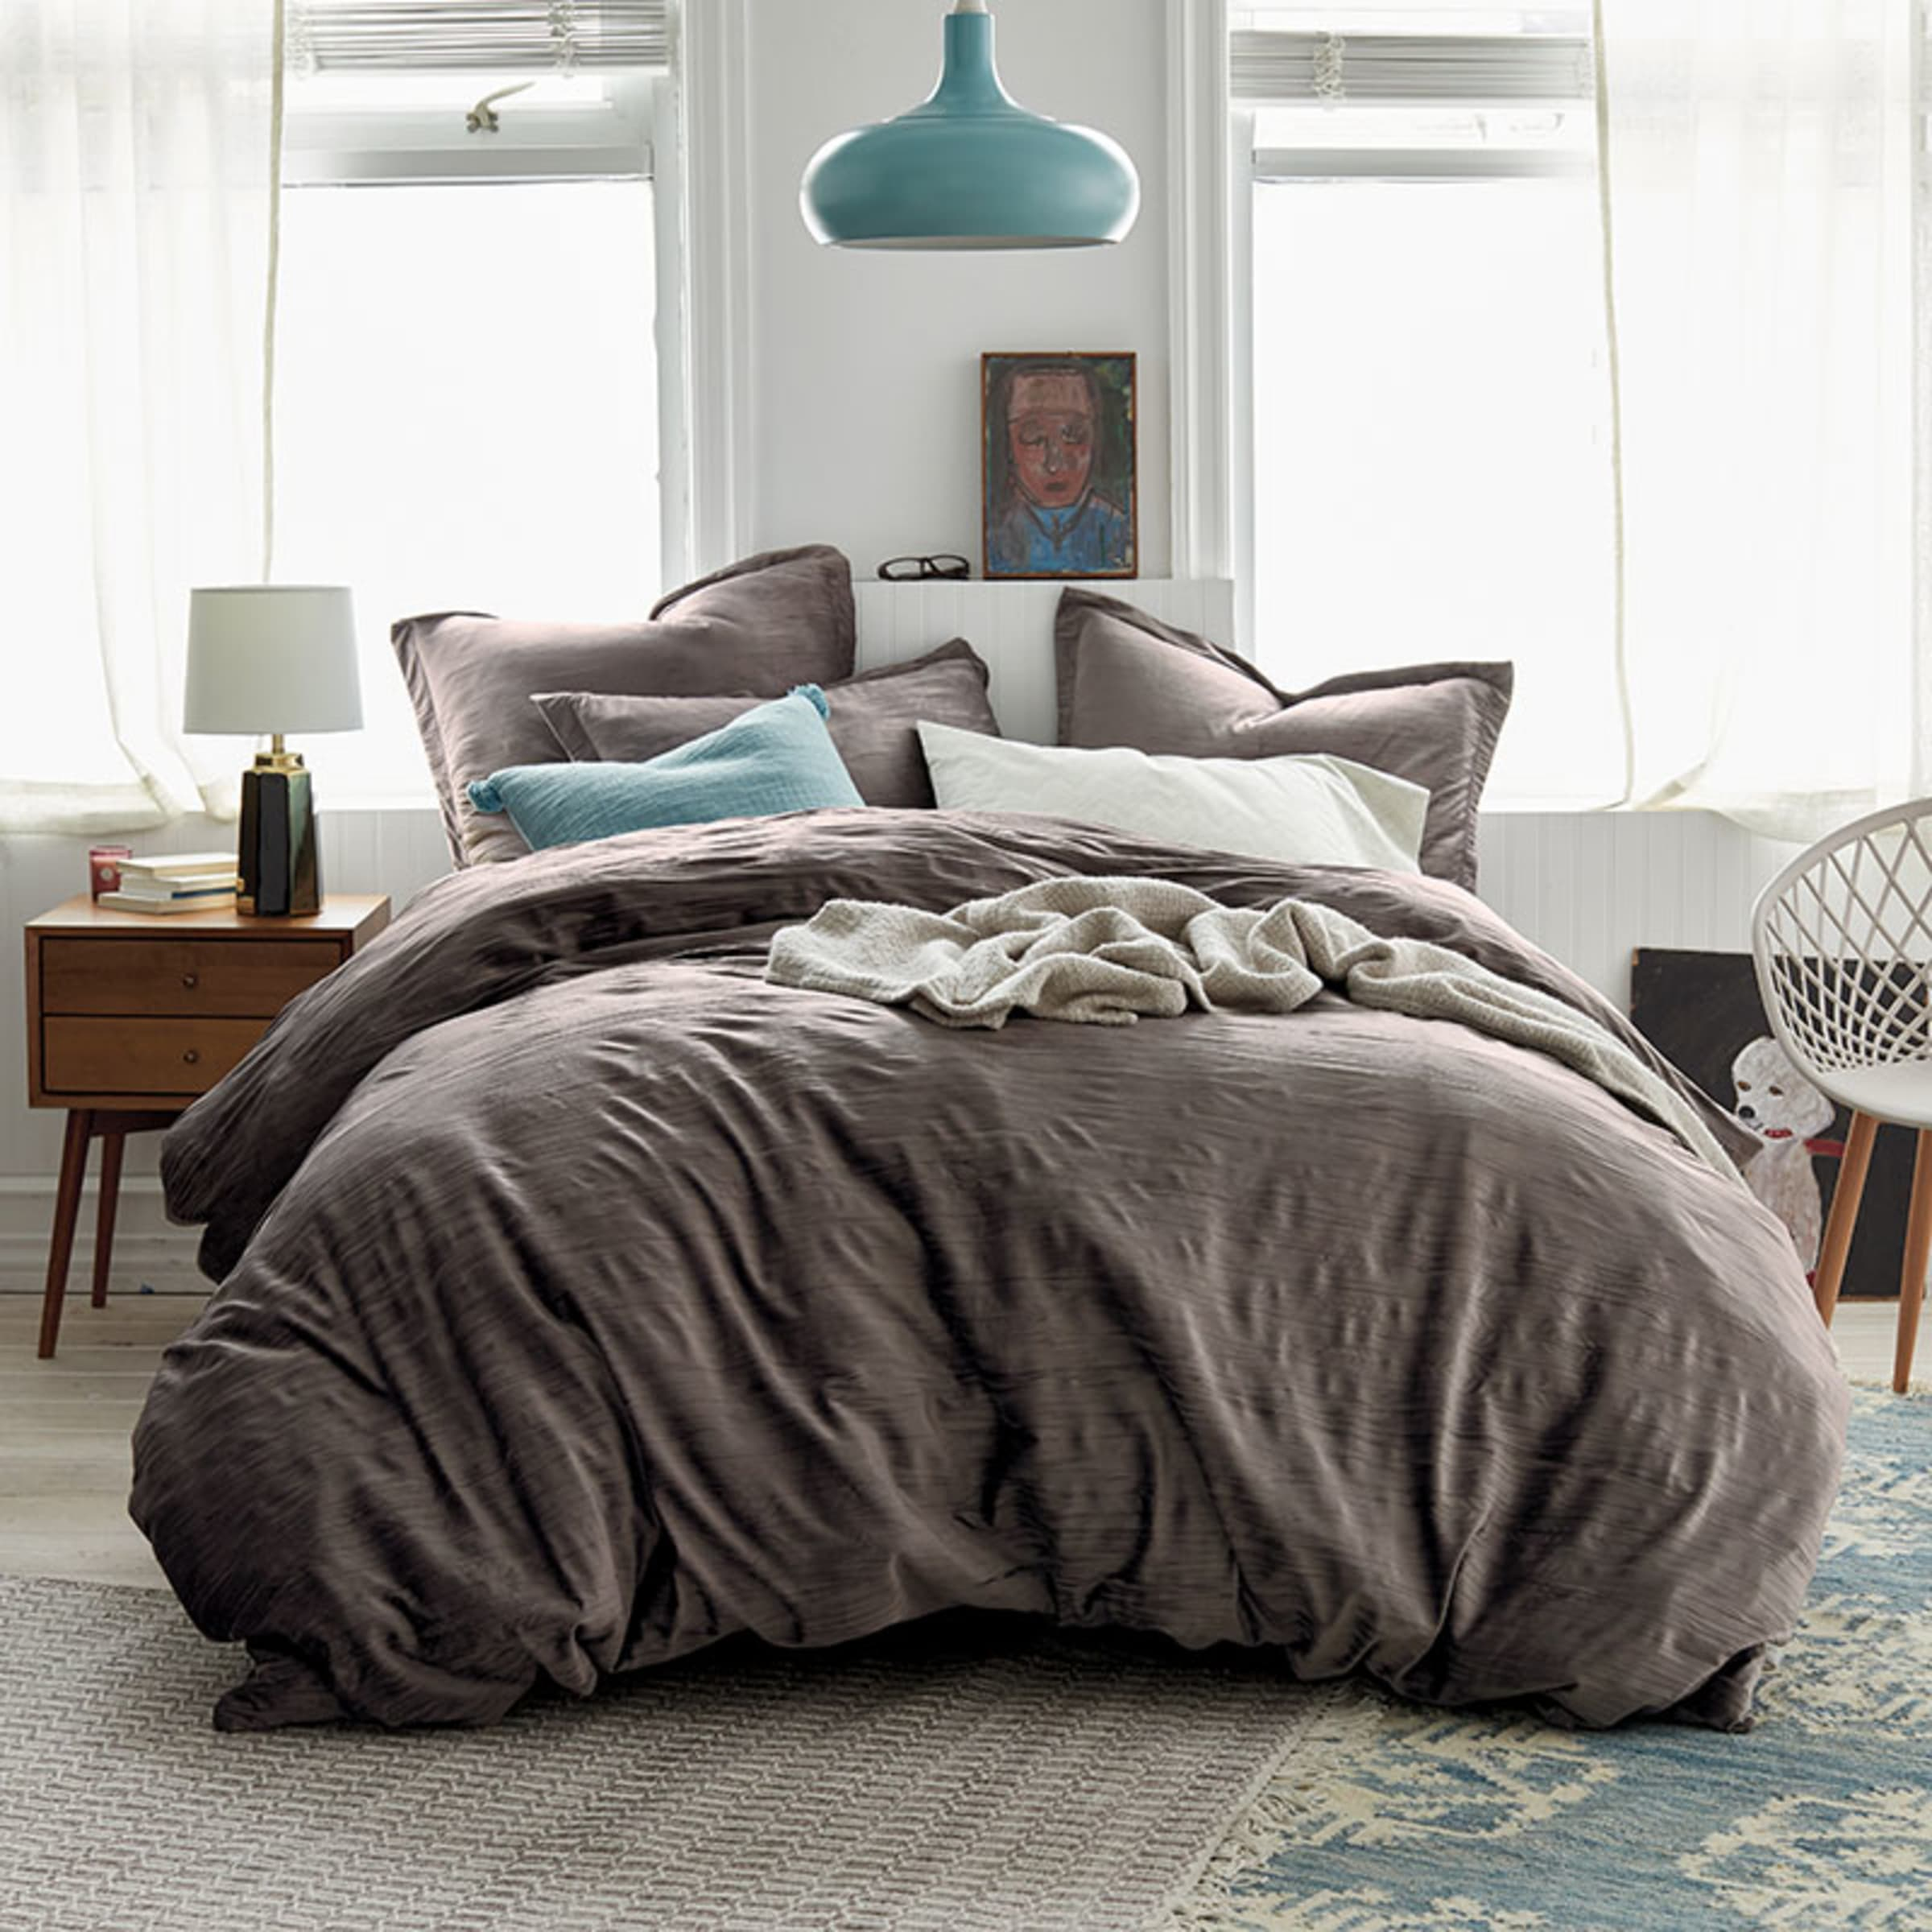 Cstudio Home Easton Crinkled Velvet Duvet Cover